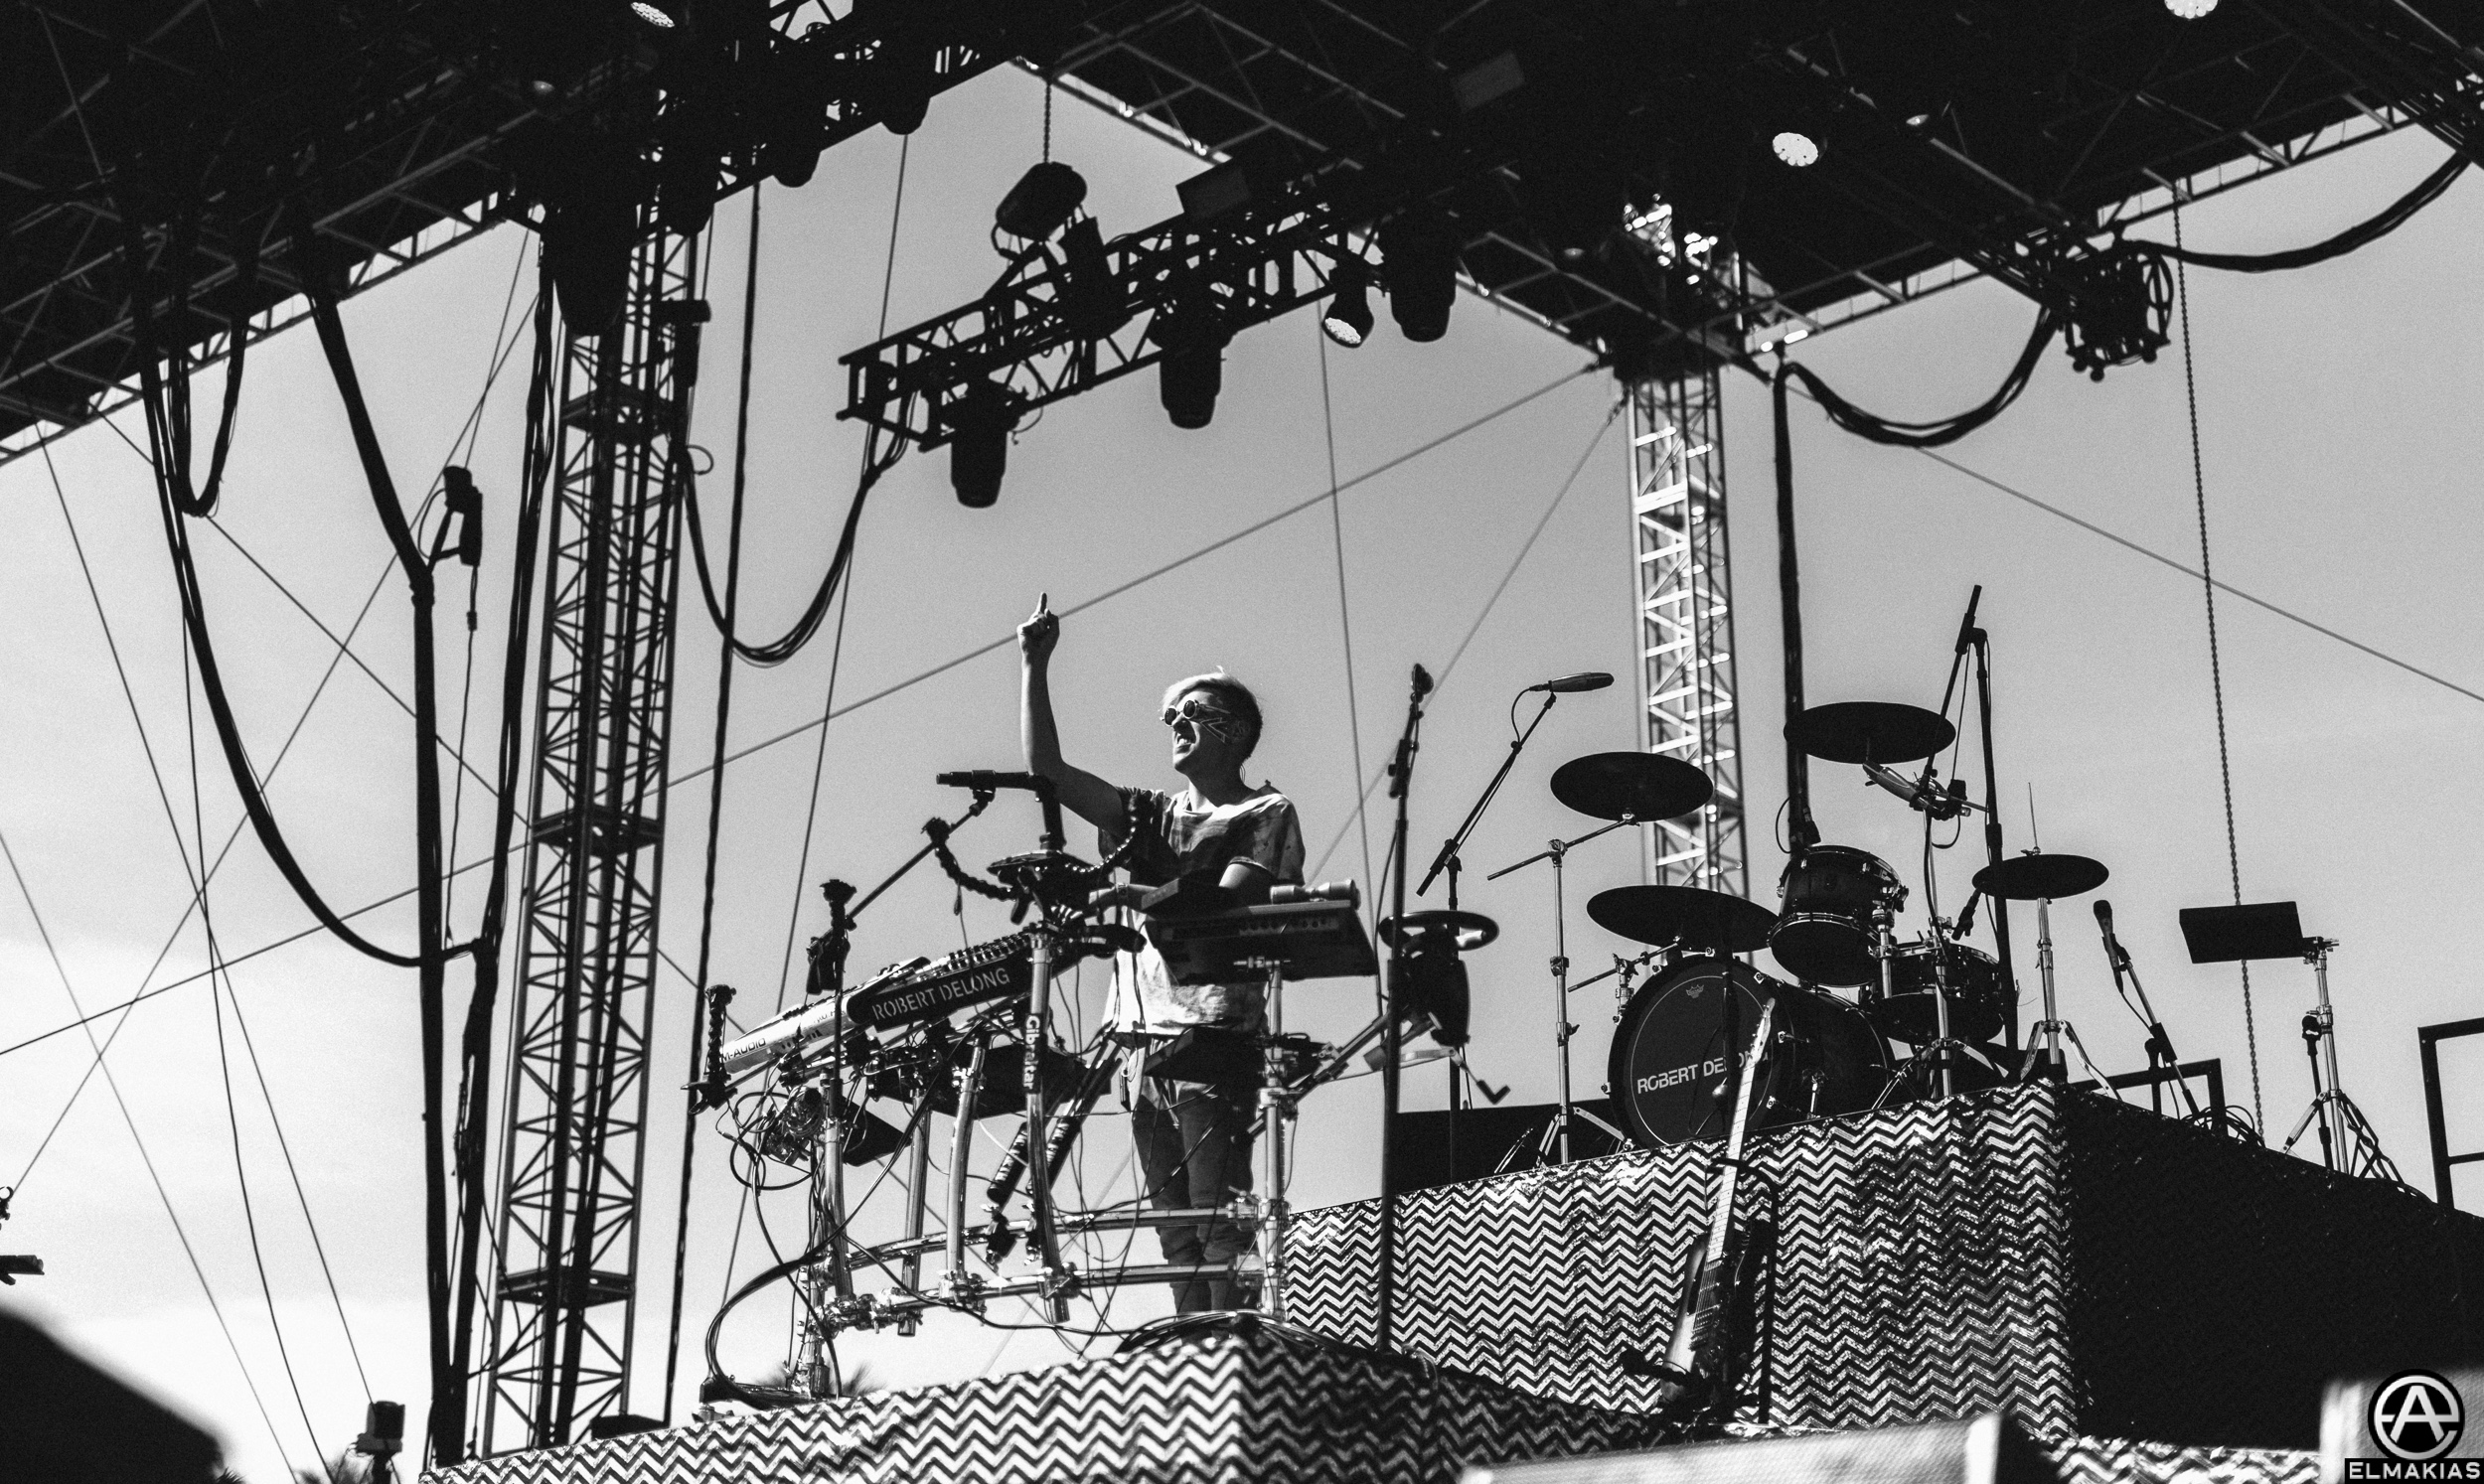 Robert DeLong at Coachella 2016 by Adam Elmakias